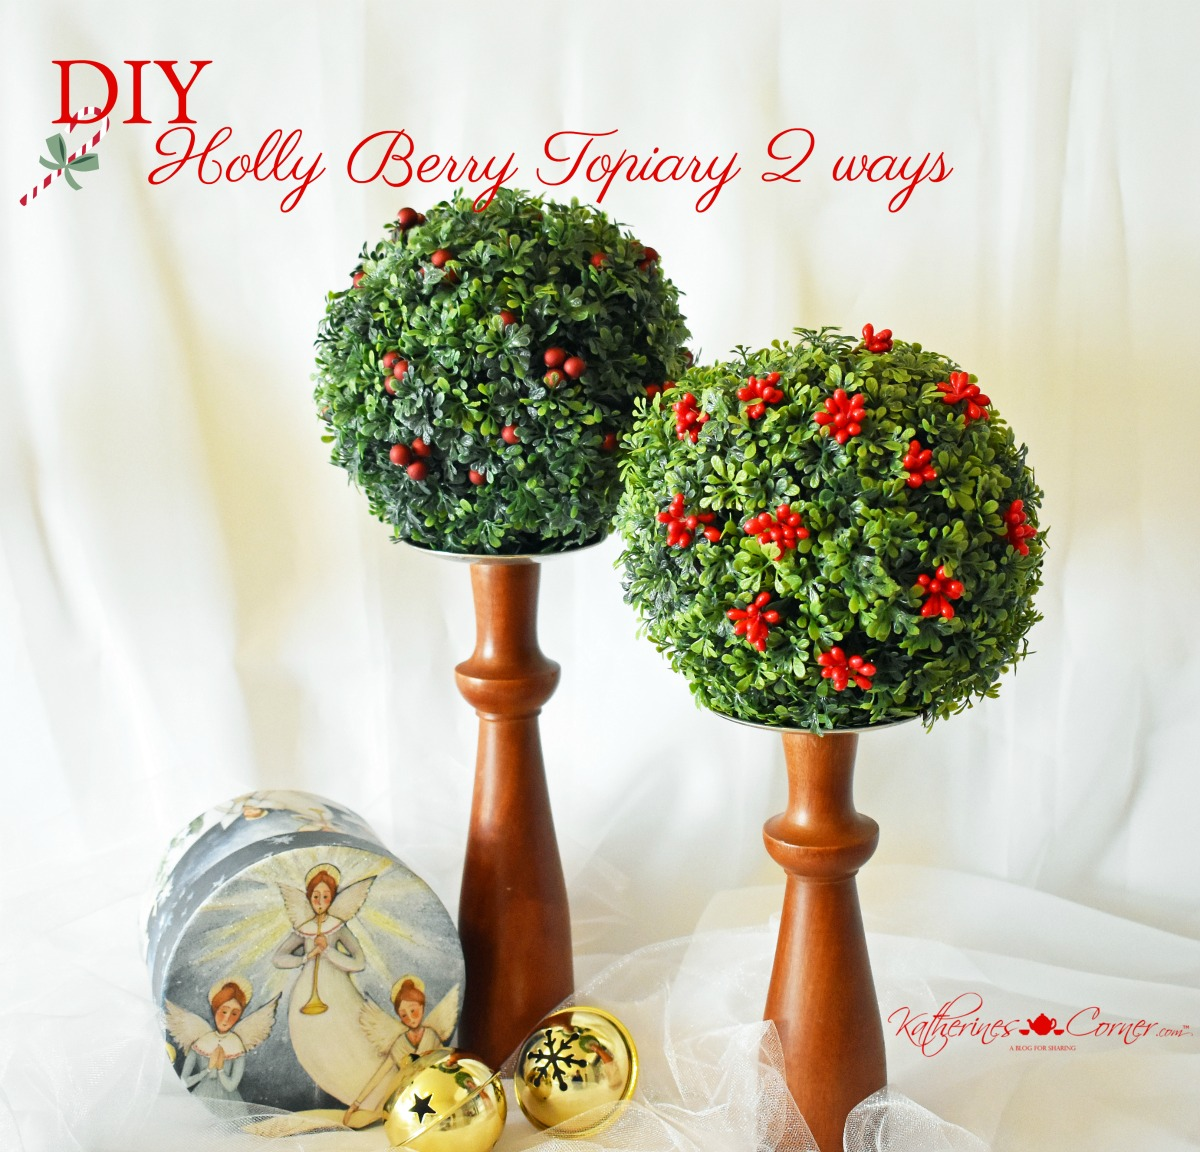 DIY Holly Berry Topiary